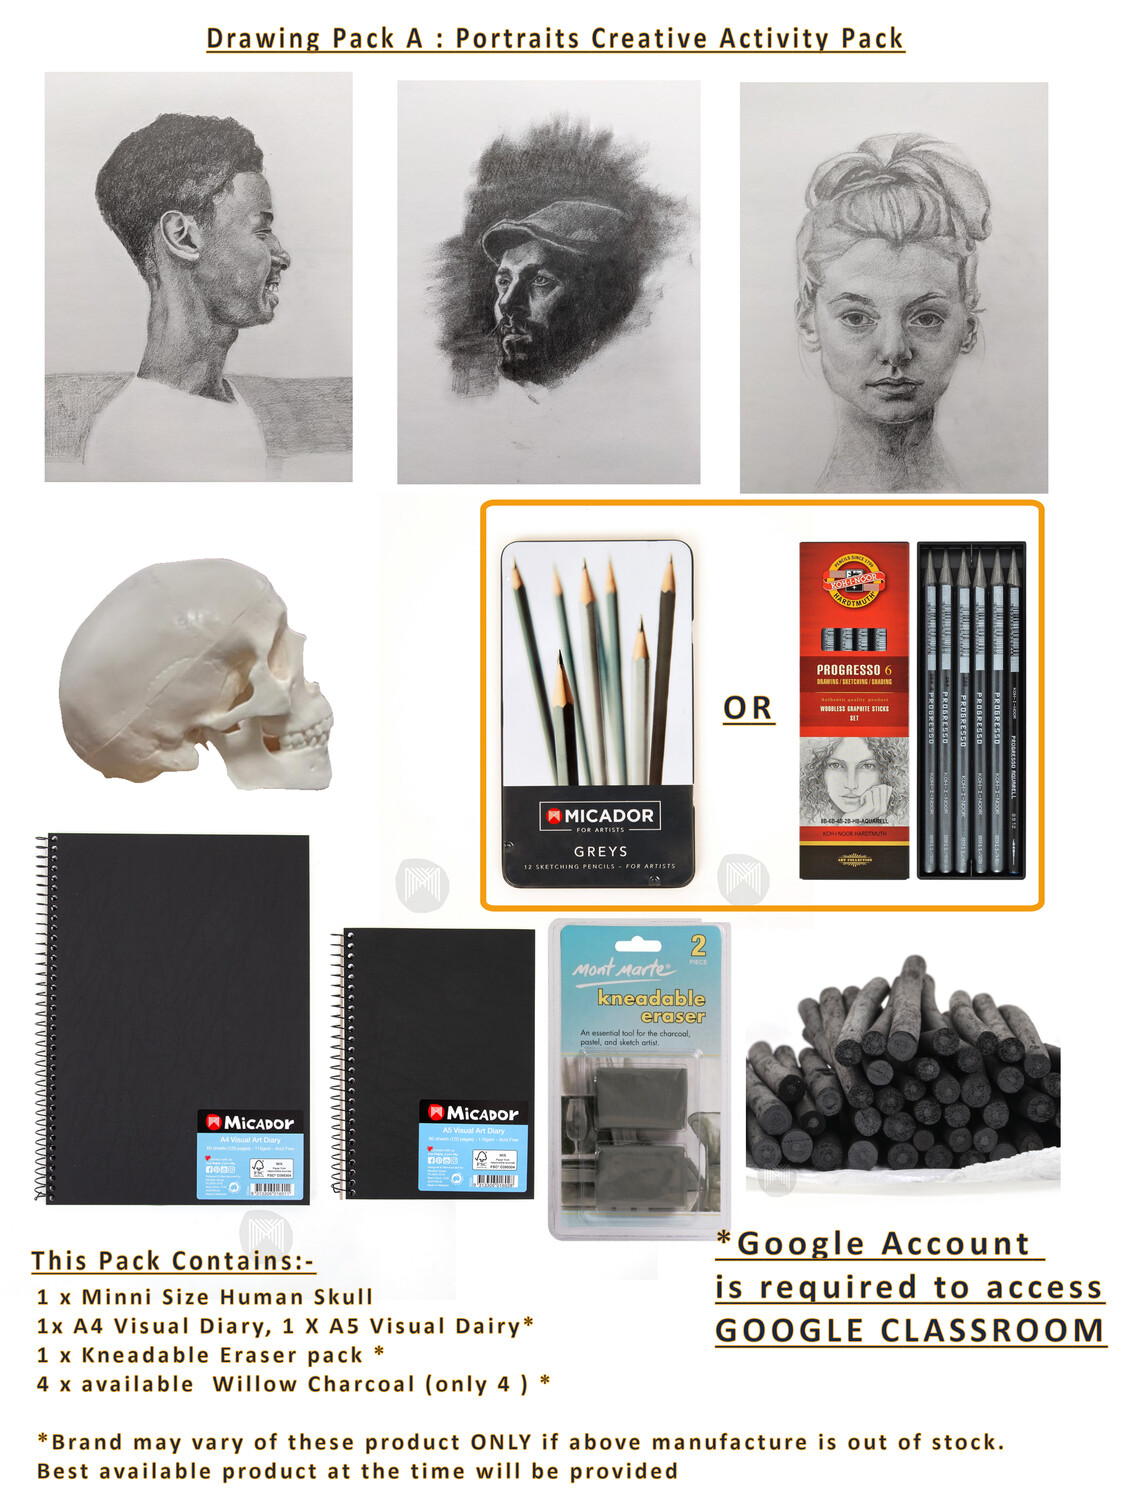 Drawing Pack A: Portraits Creative Activity pack